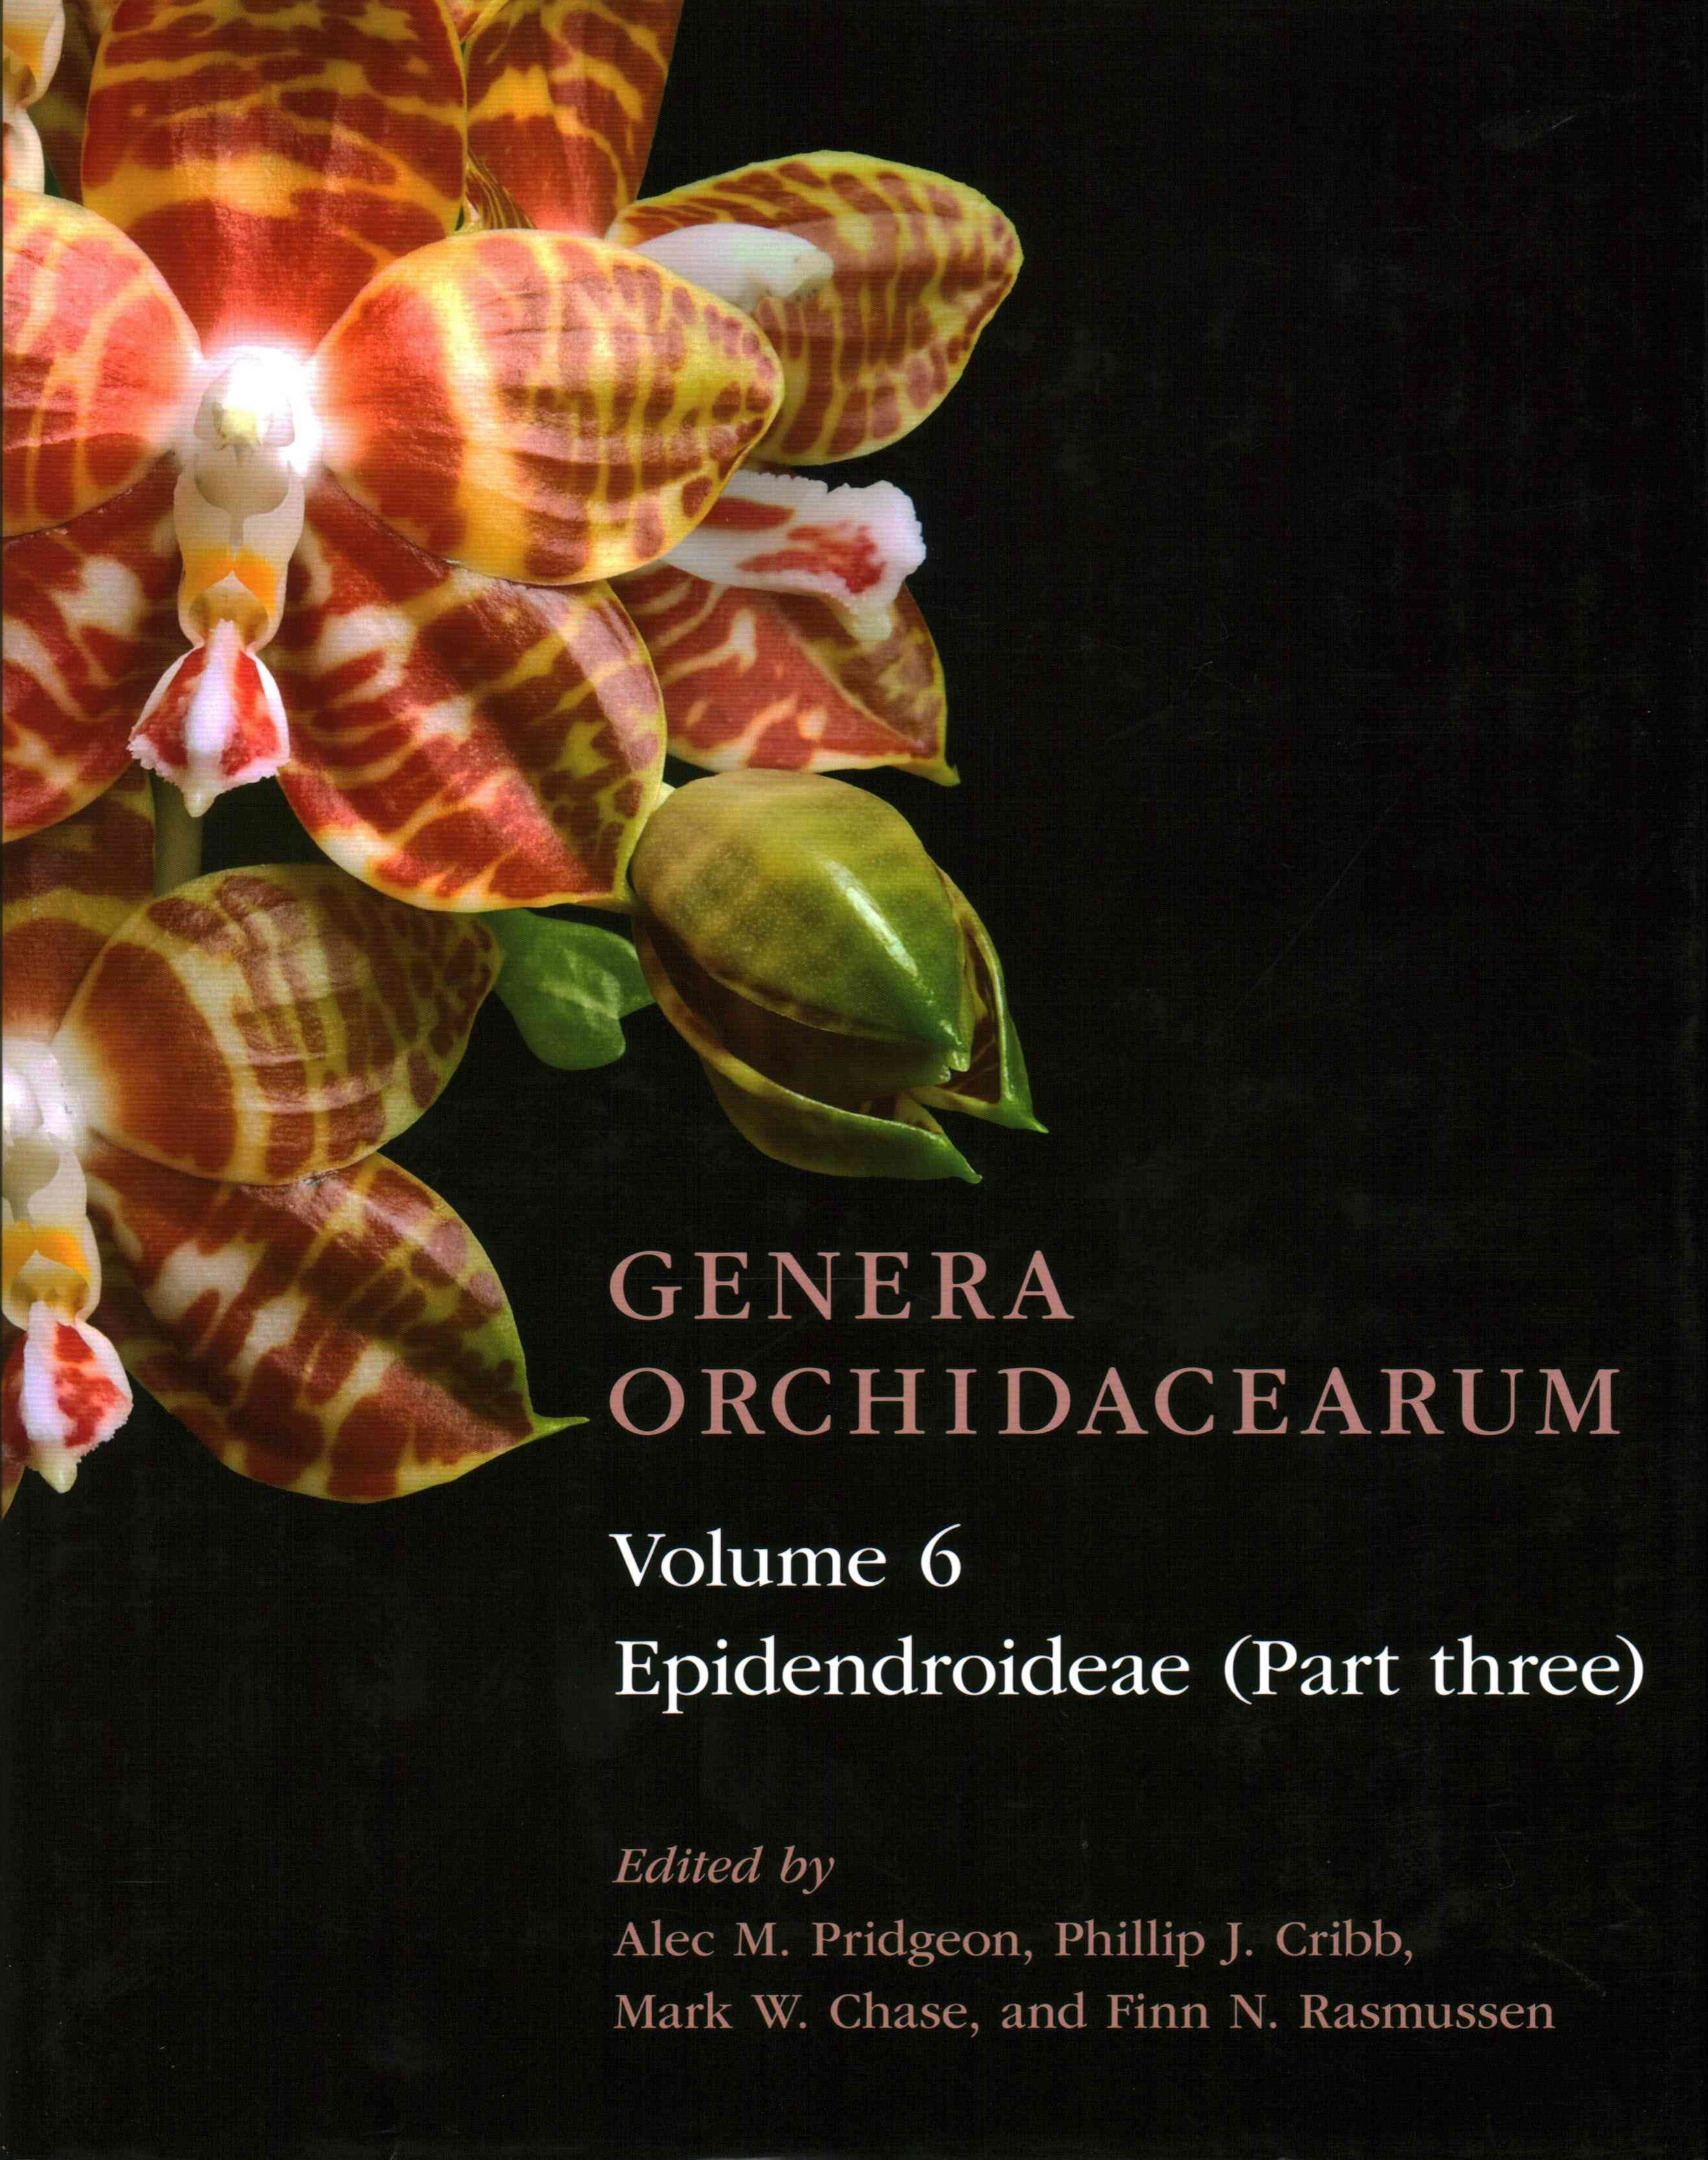 Genera Orchidacearum Volume 6